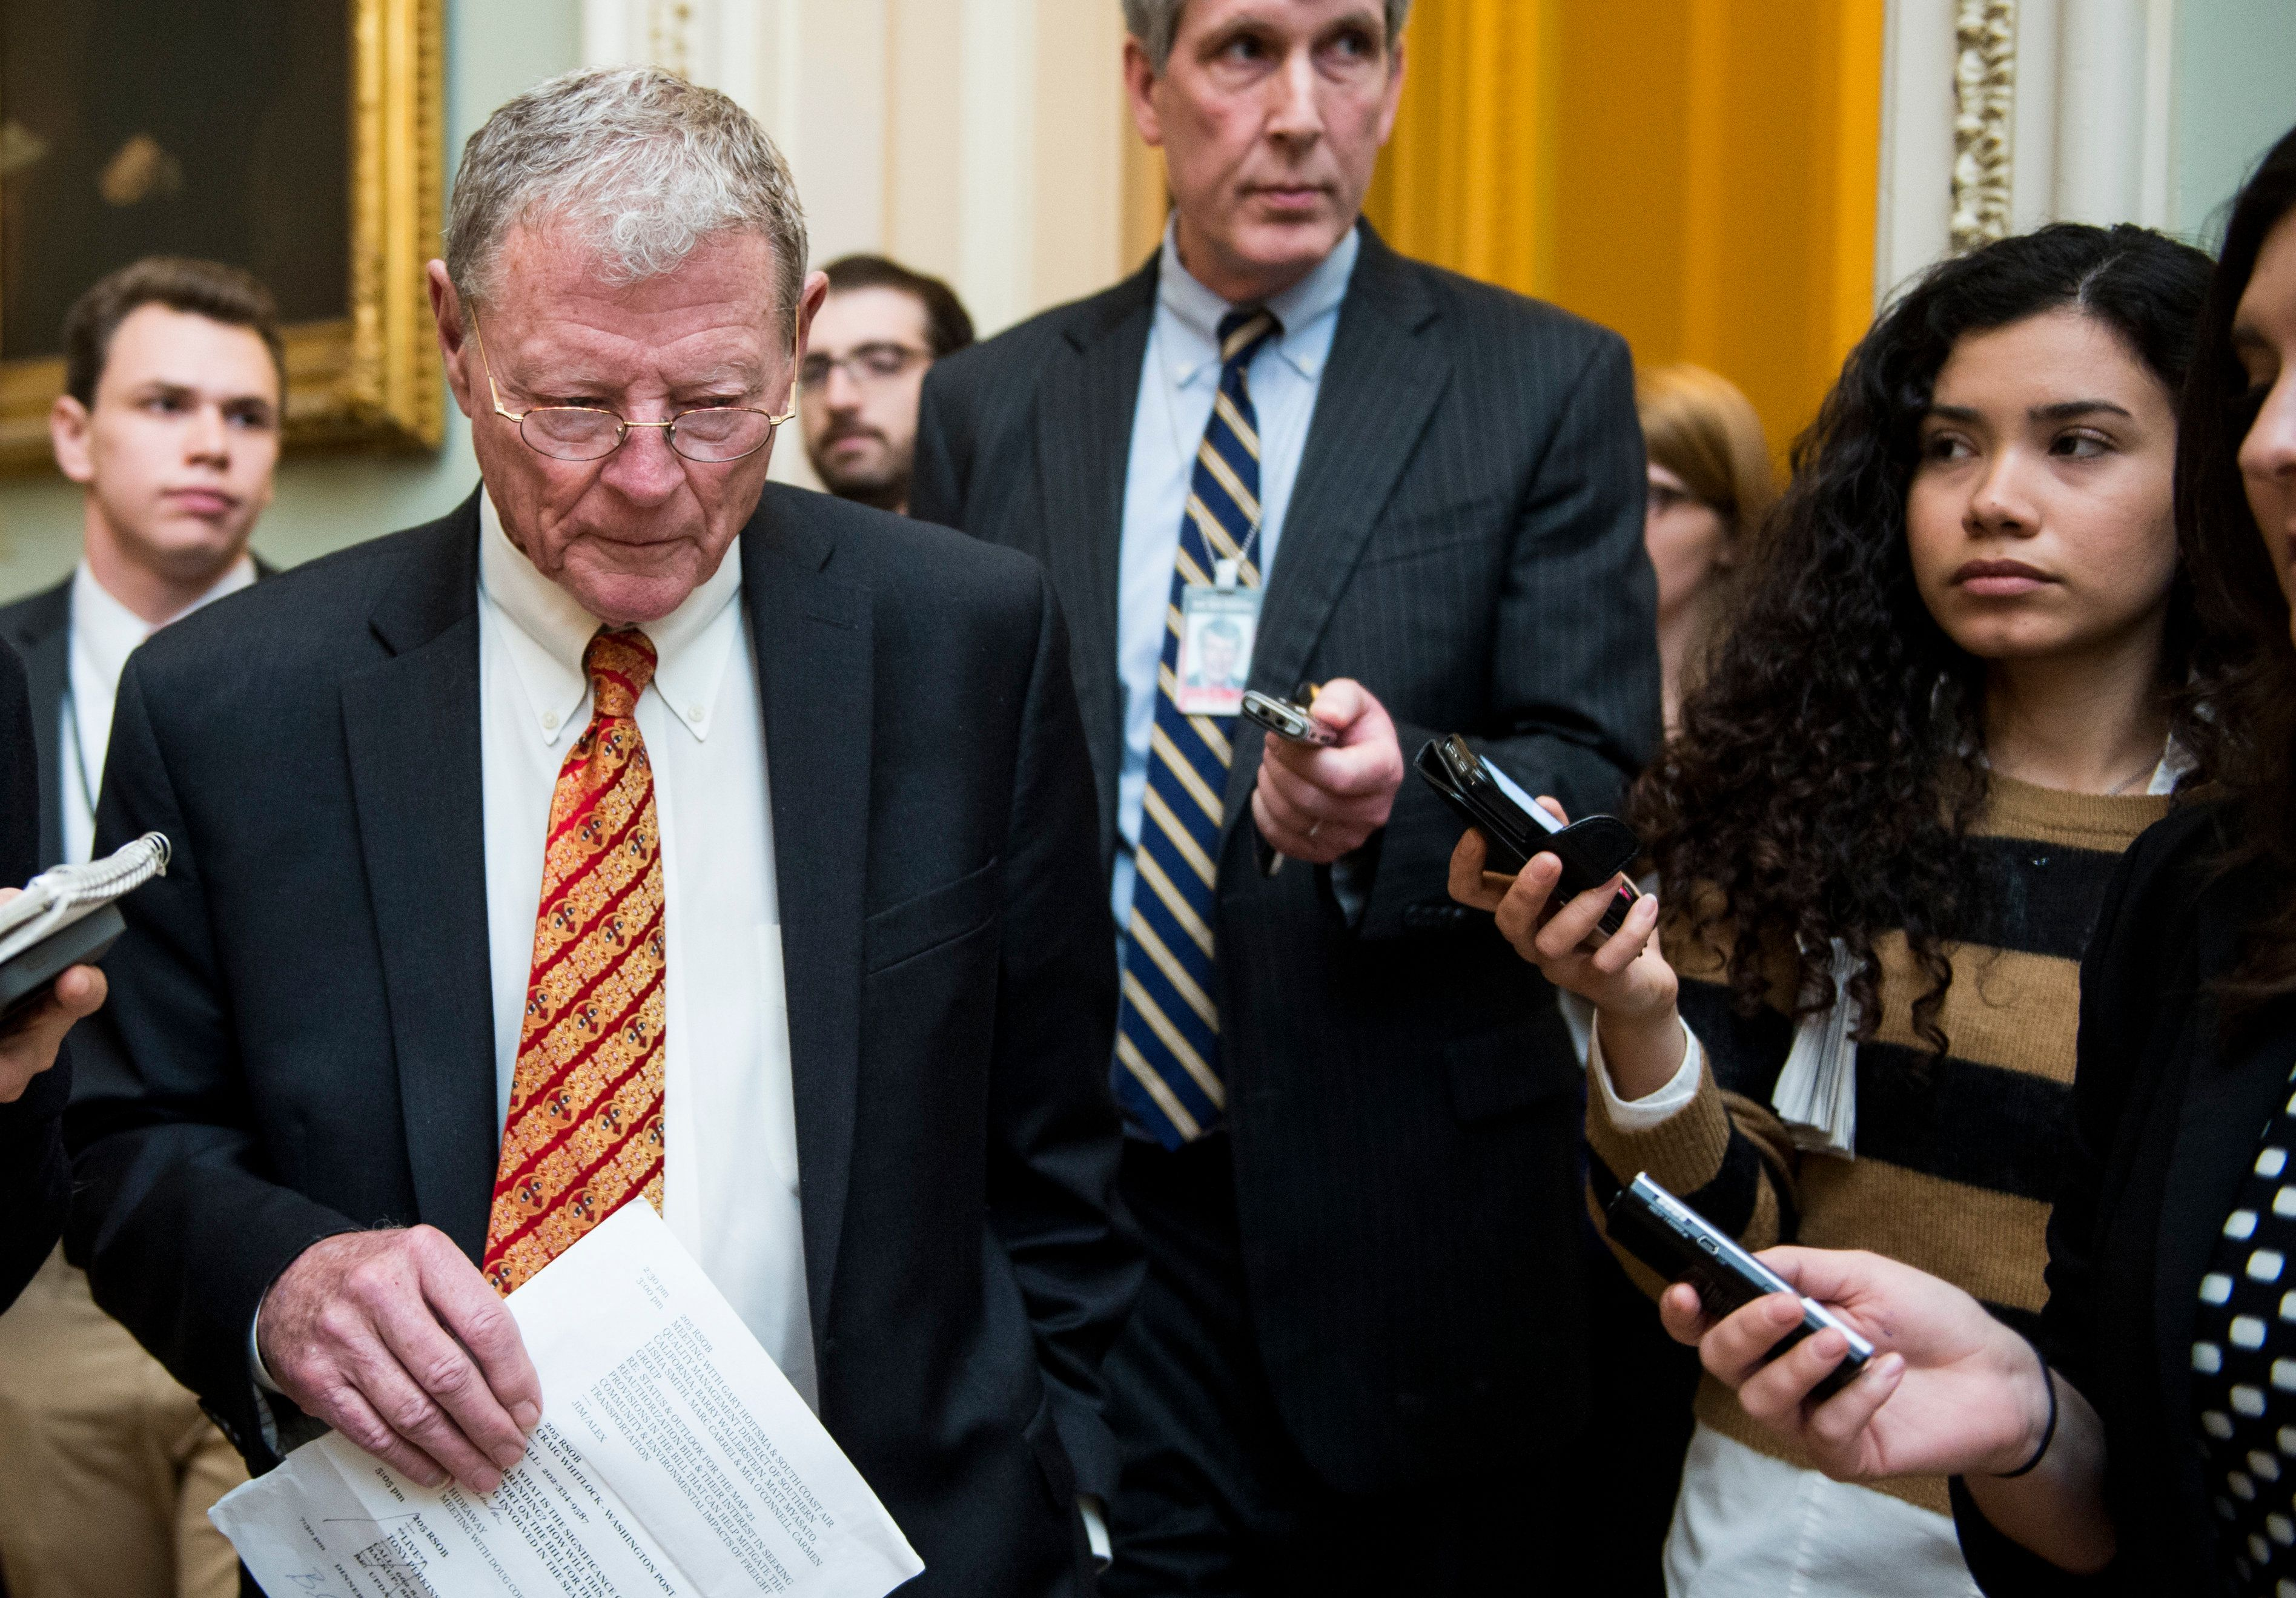 Sen. Jim Inhofe (R-Okla)says the funding measure will be voted on as a standalone bill.